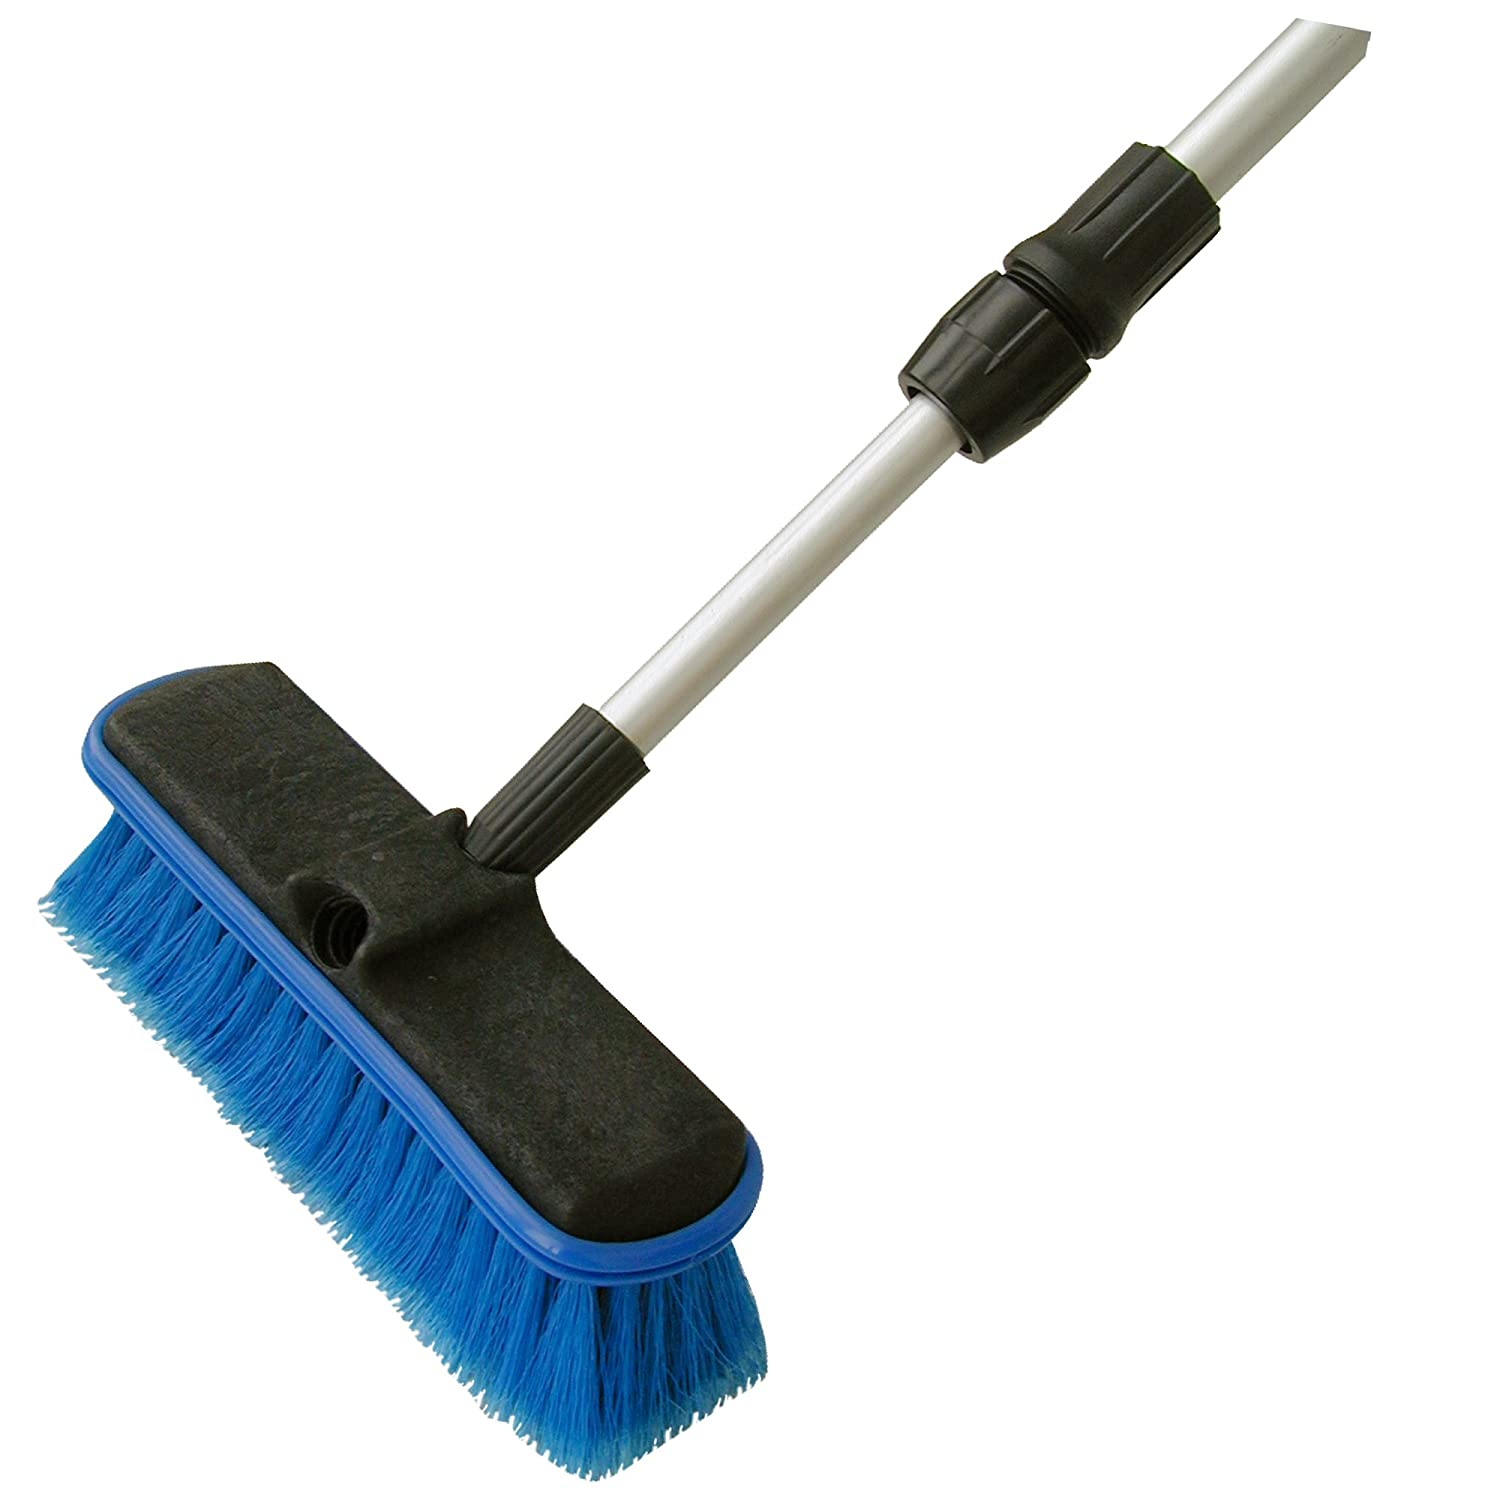 Detailer's Choice 4B369 Flow-Thru Vehicle Wash Brush with 60-Inch Telescoping Handle - 1-Each Detailer' s Choice